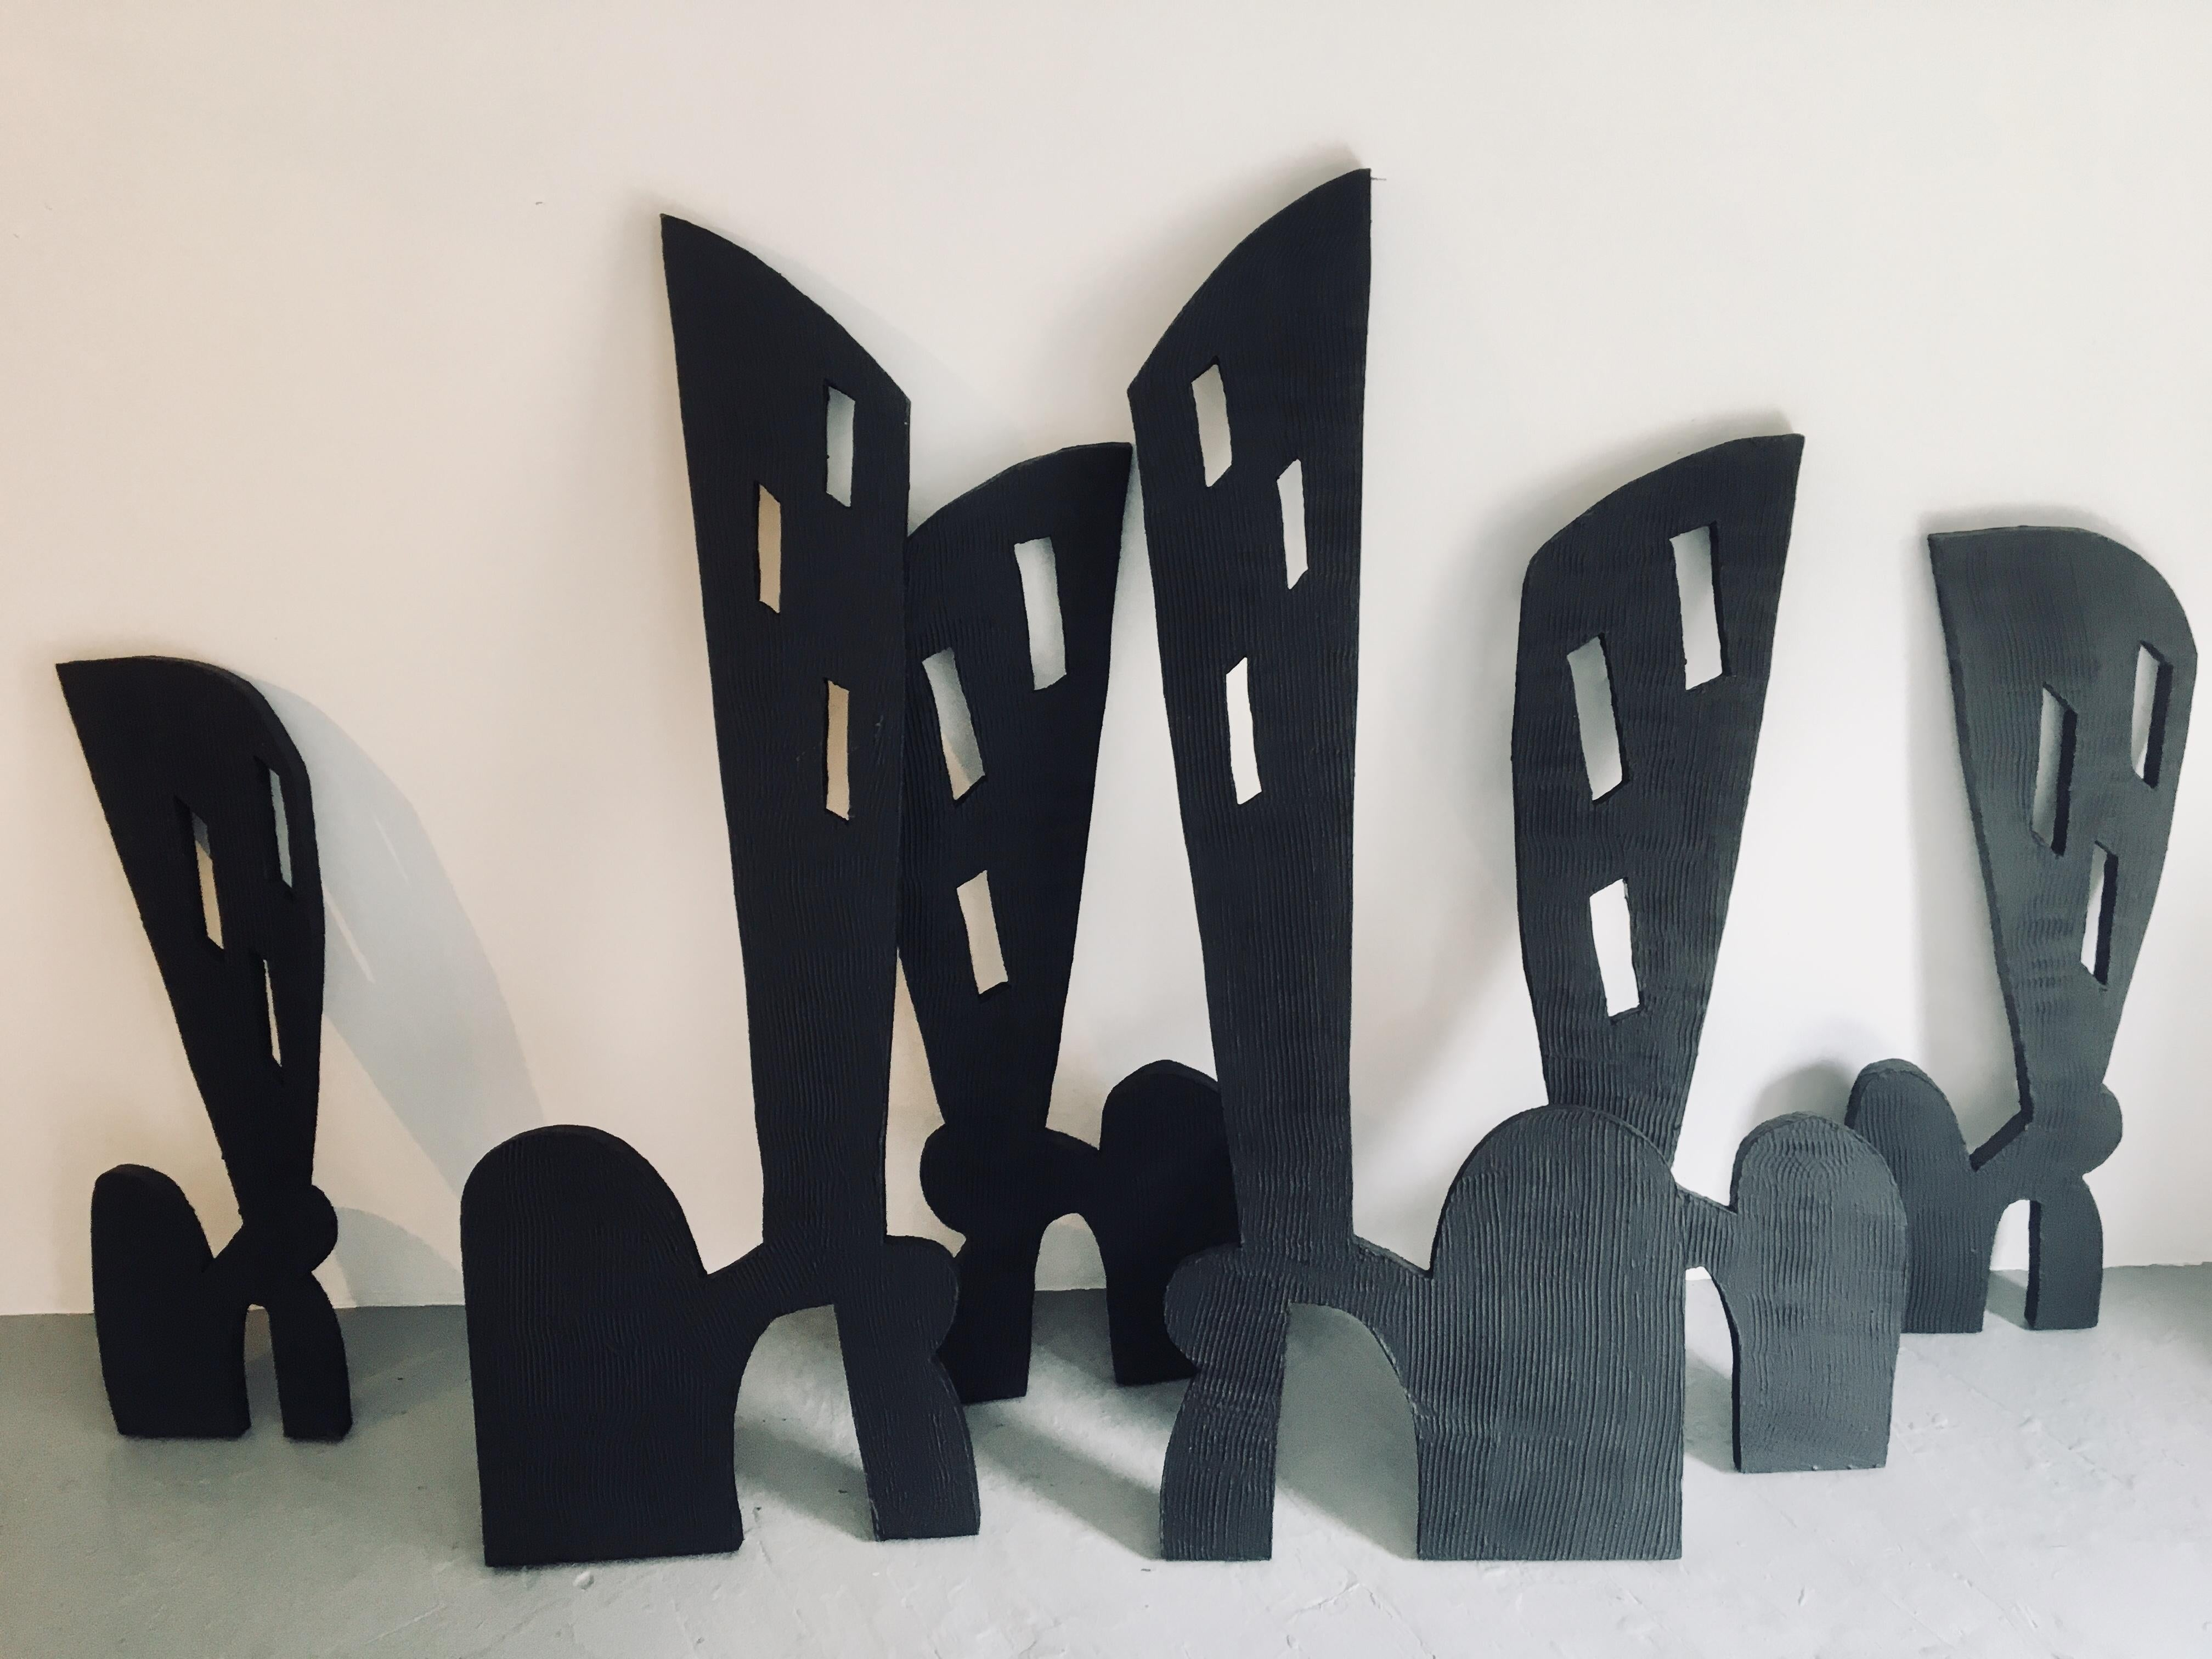 Abstract City Sculpture: 'Cityscape' (sold separately)